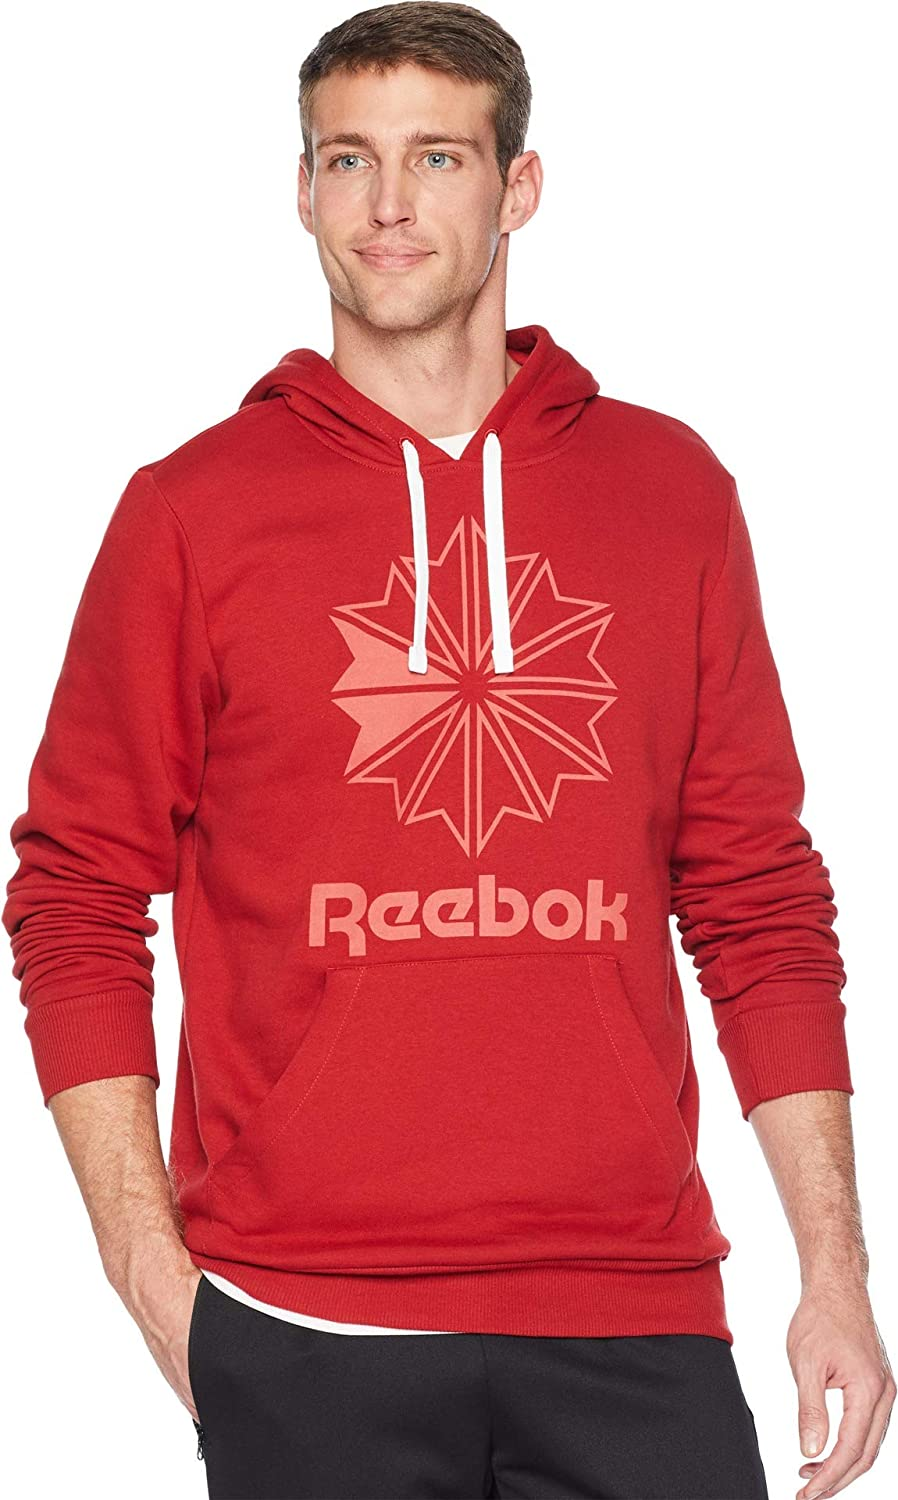 e276a19f Amazon.com: Reebok Men' Foundation Starcrest Hoodie: Clothing